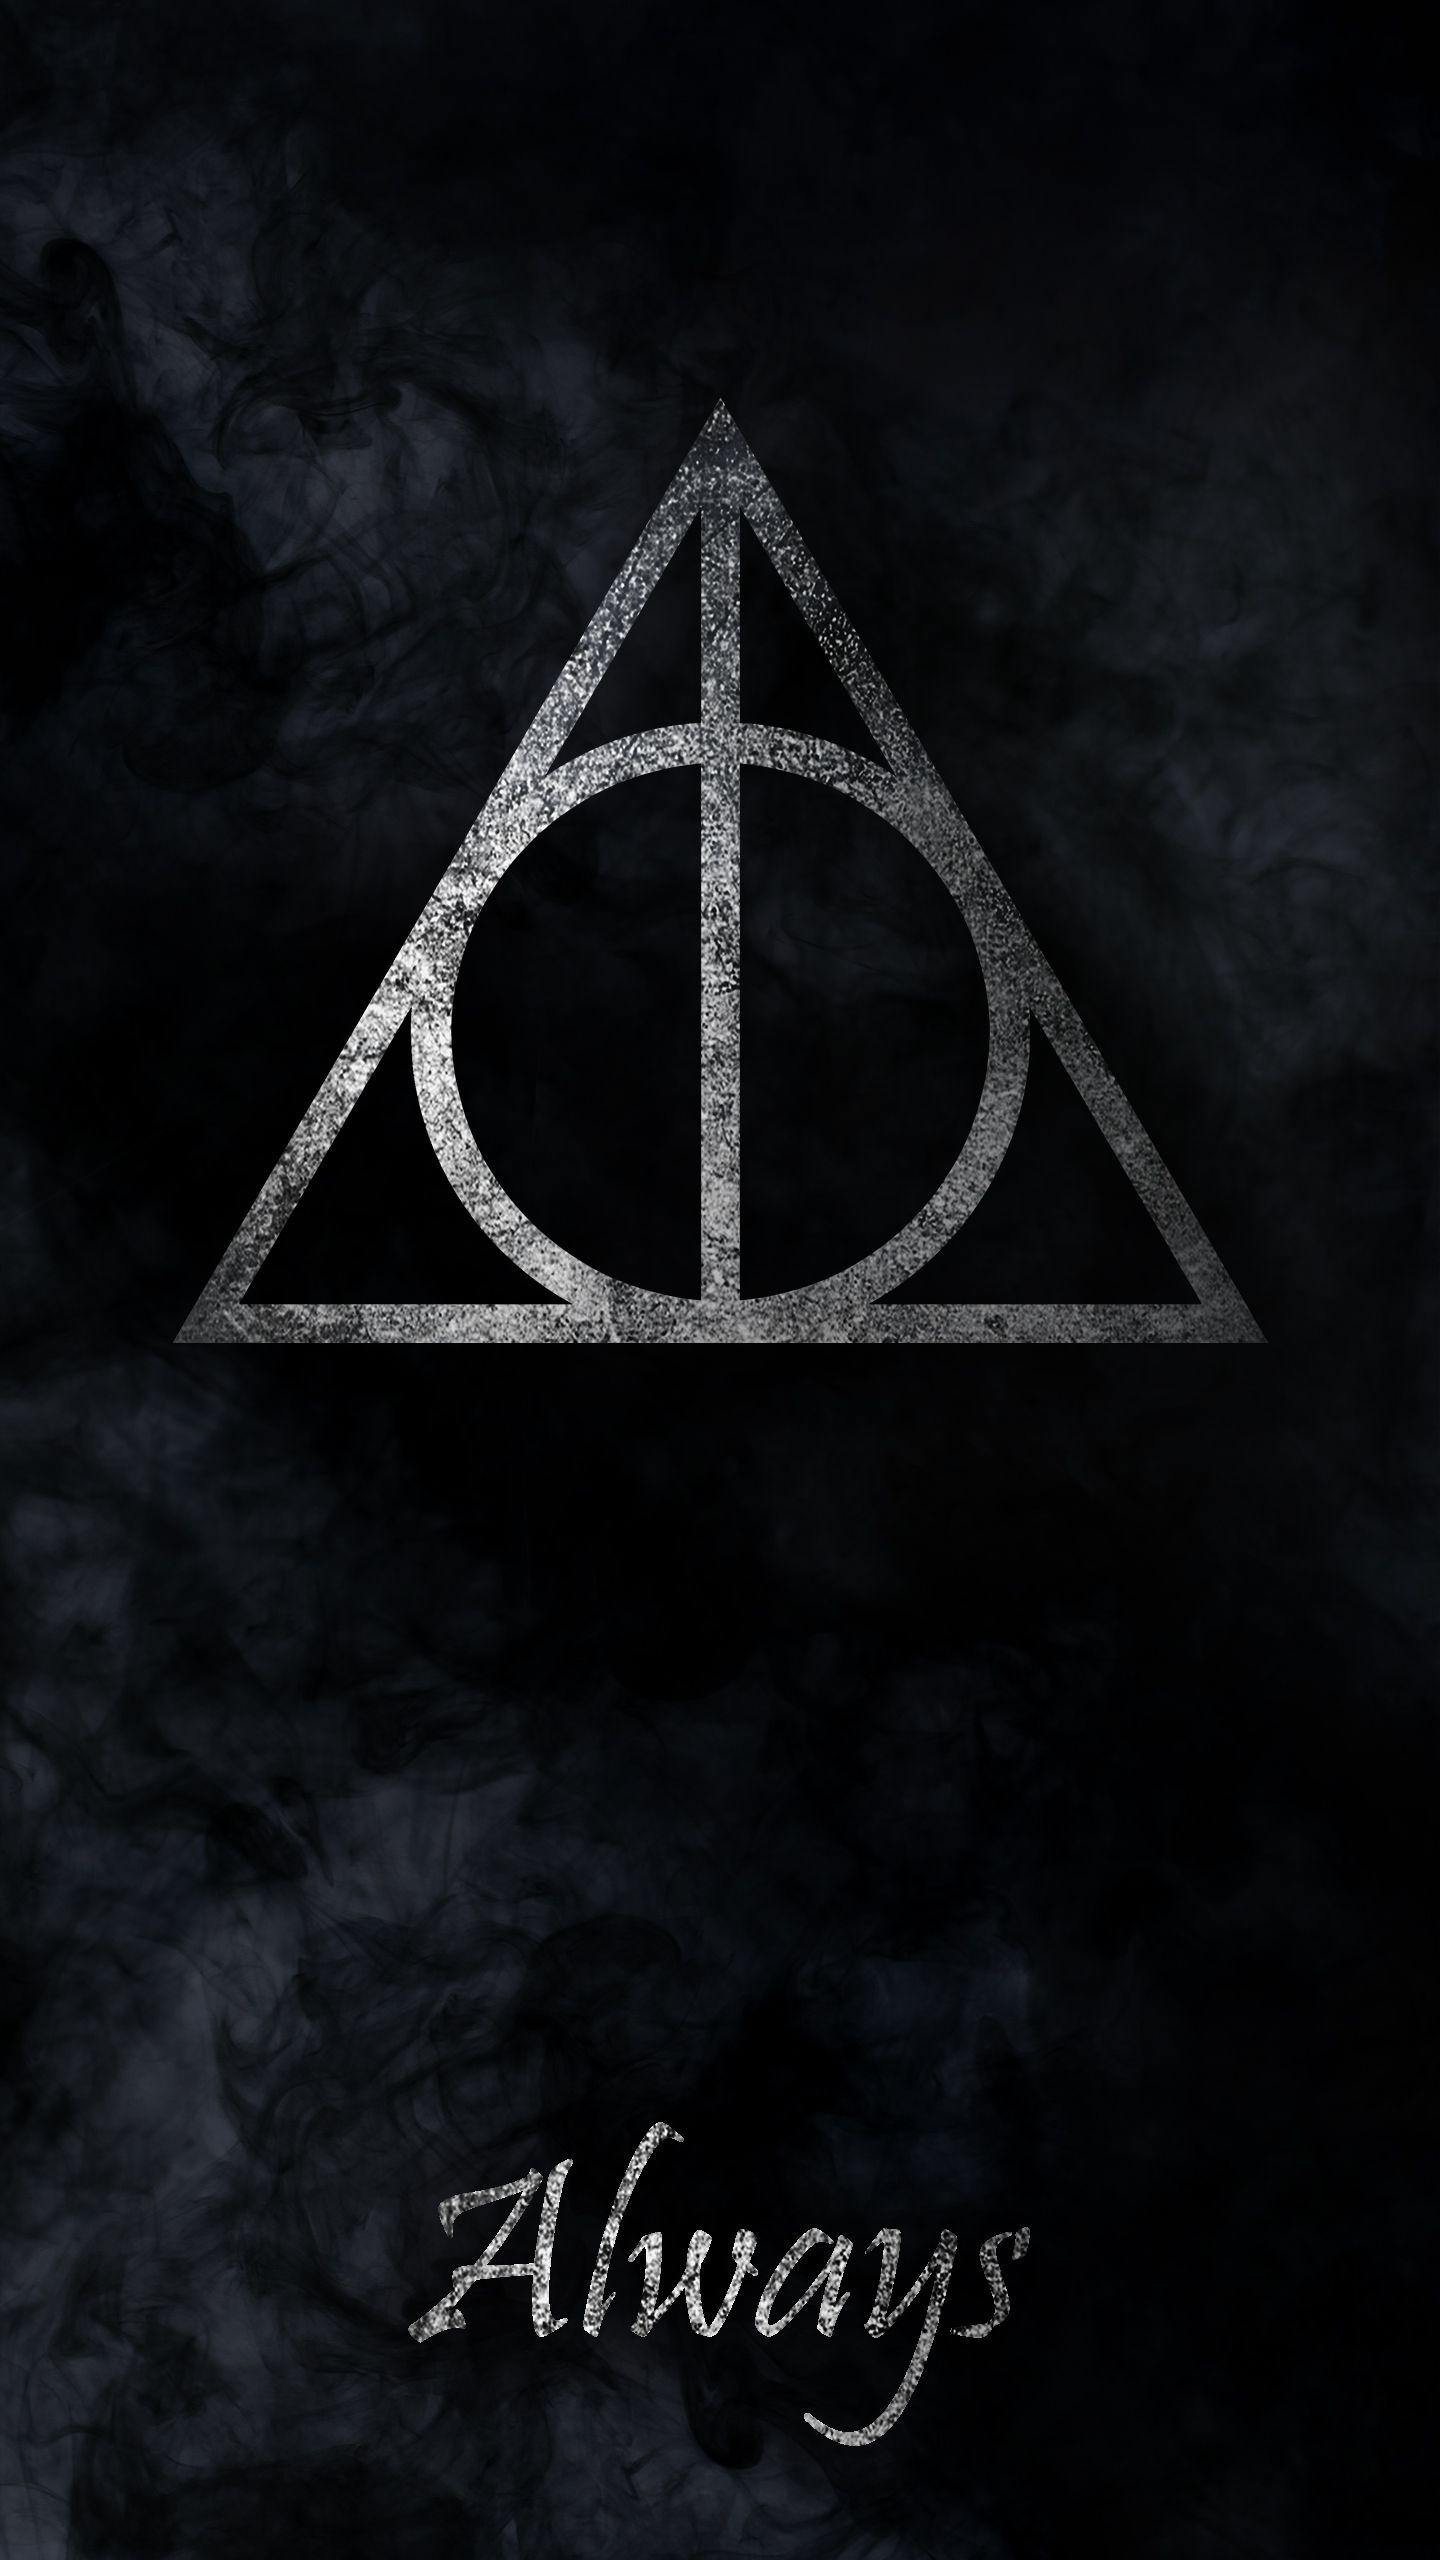 Harry Potter And The Deathly Hallows Phone Wallpaper